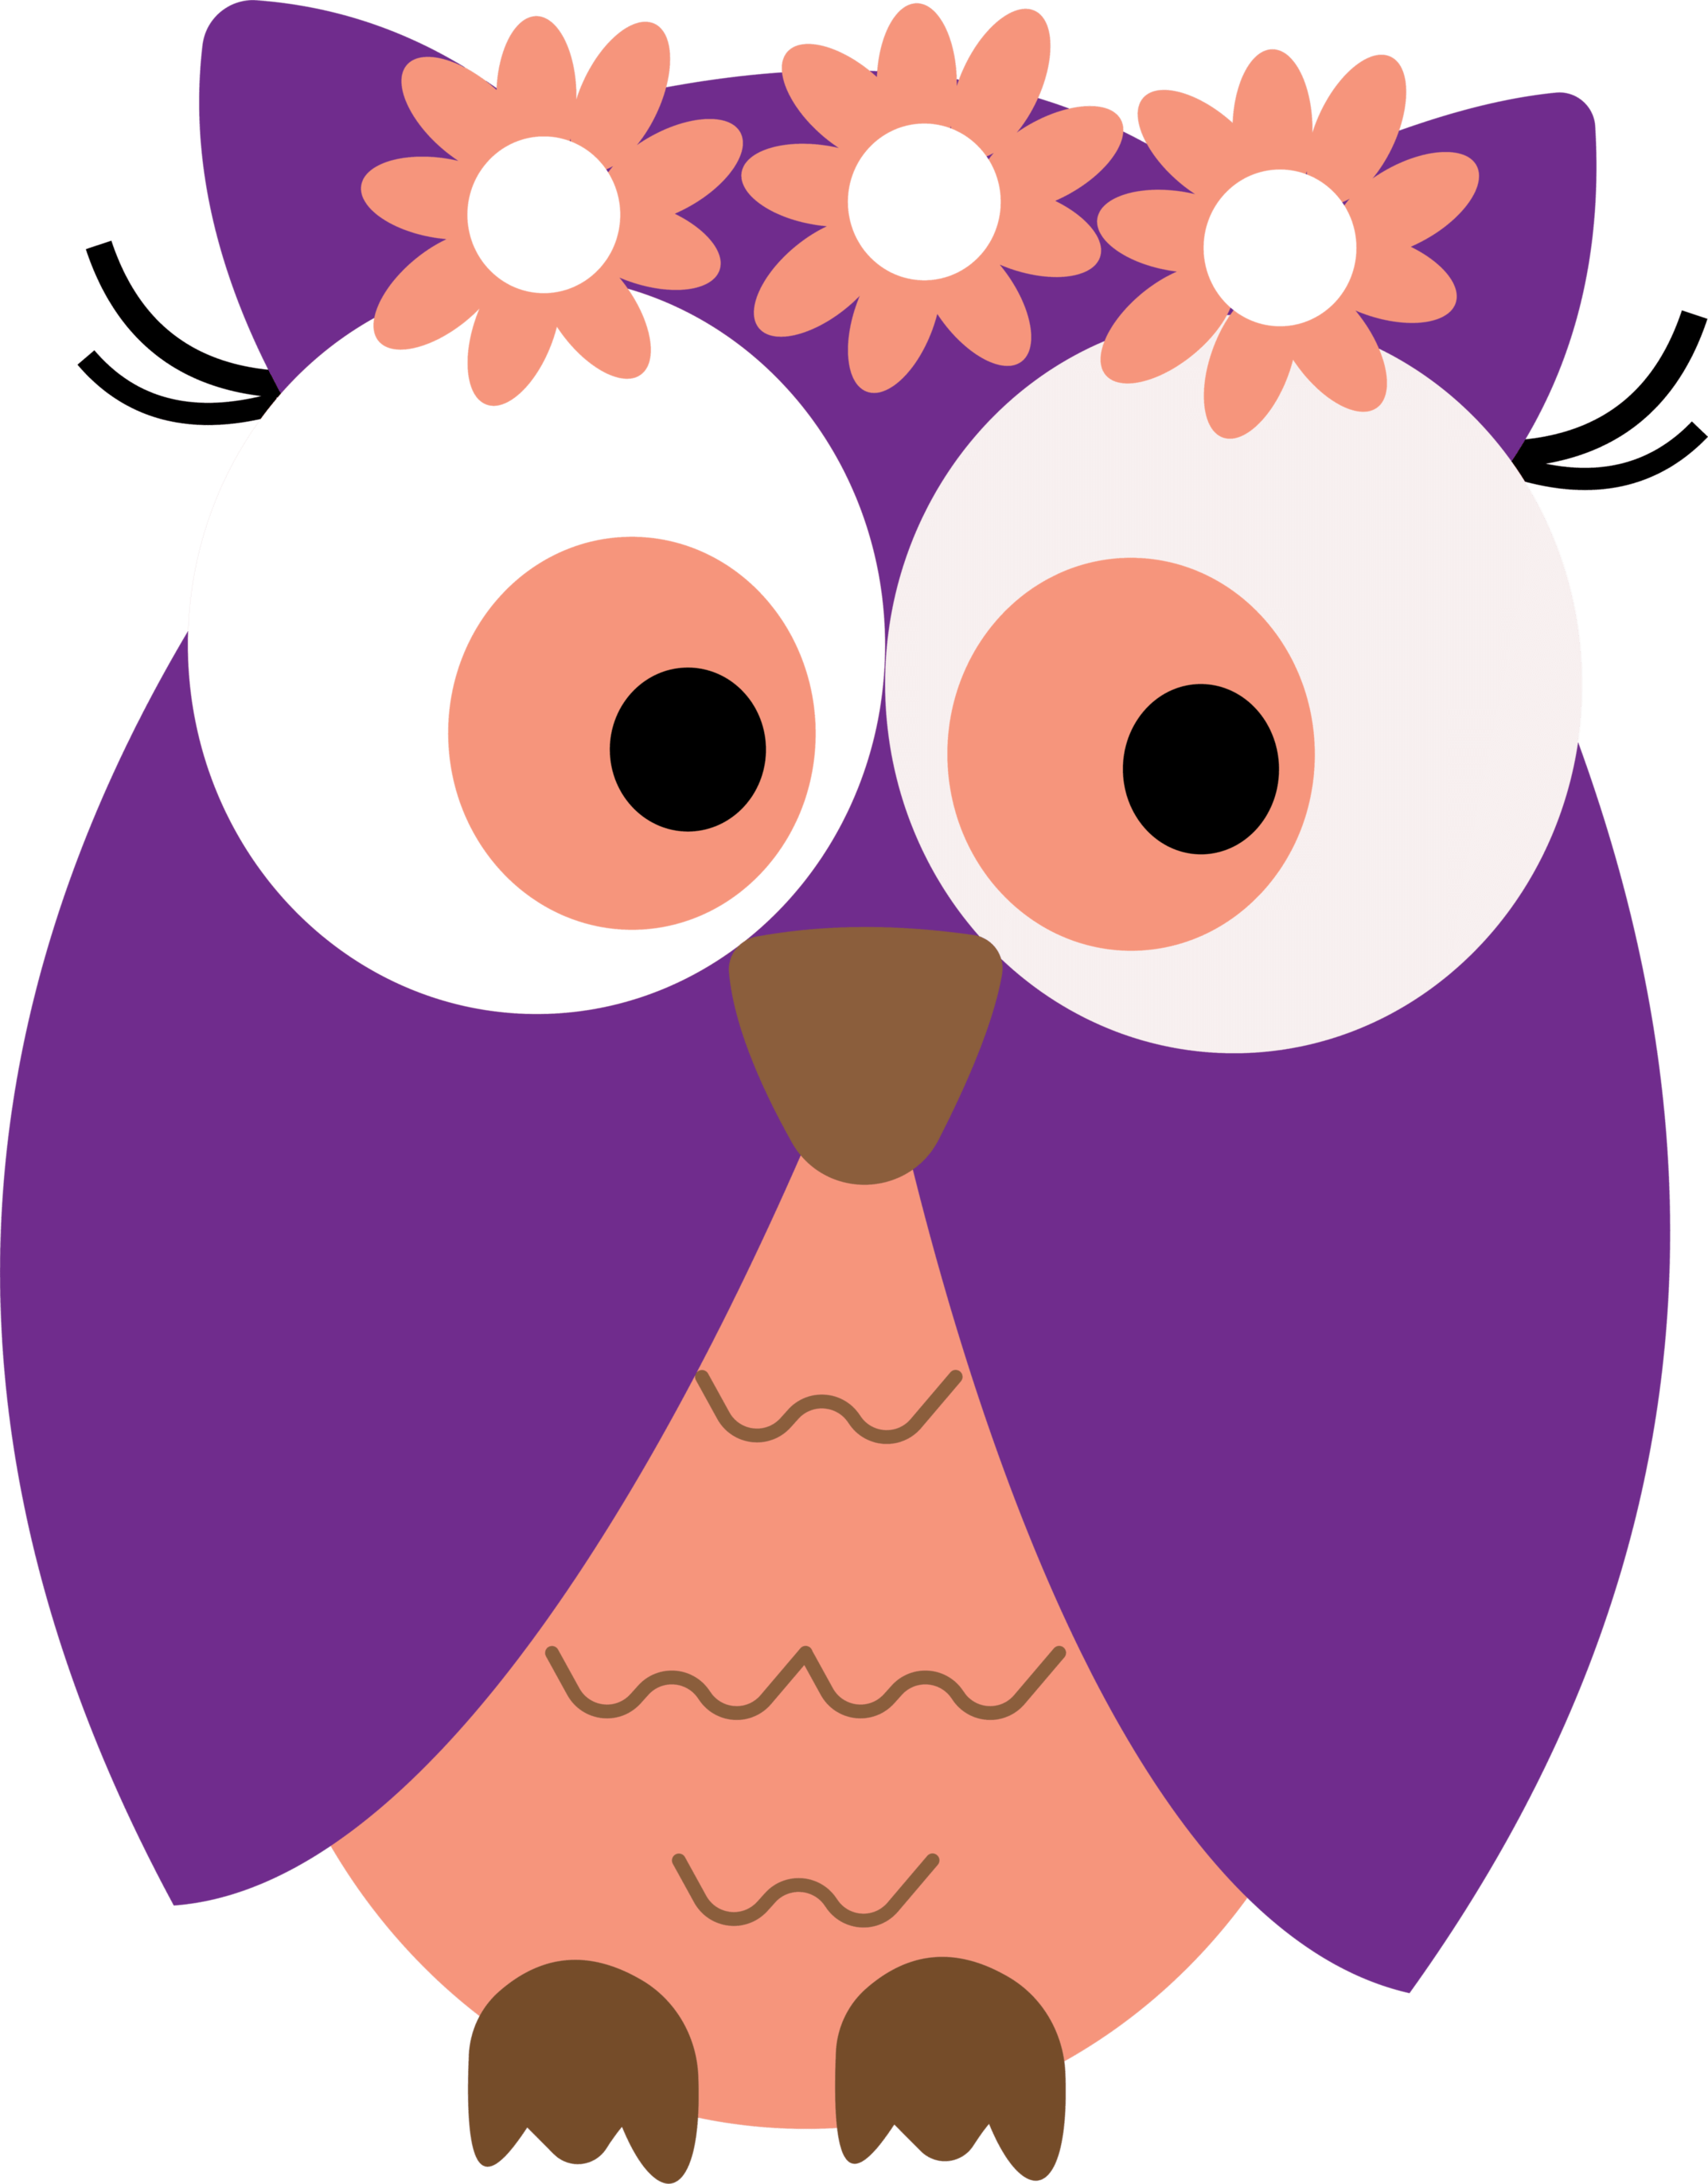 Owl heart clipart jpg royalty free library CH B *✿* Graduation Owls Owl Card Clipart Free Clip Art Images ... jpg royalty free library